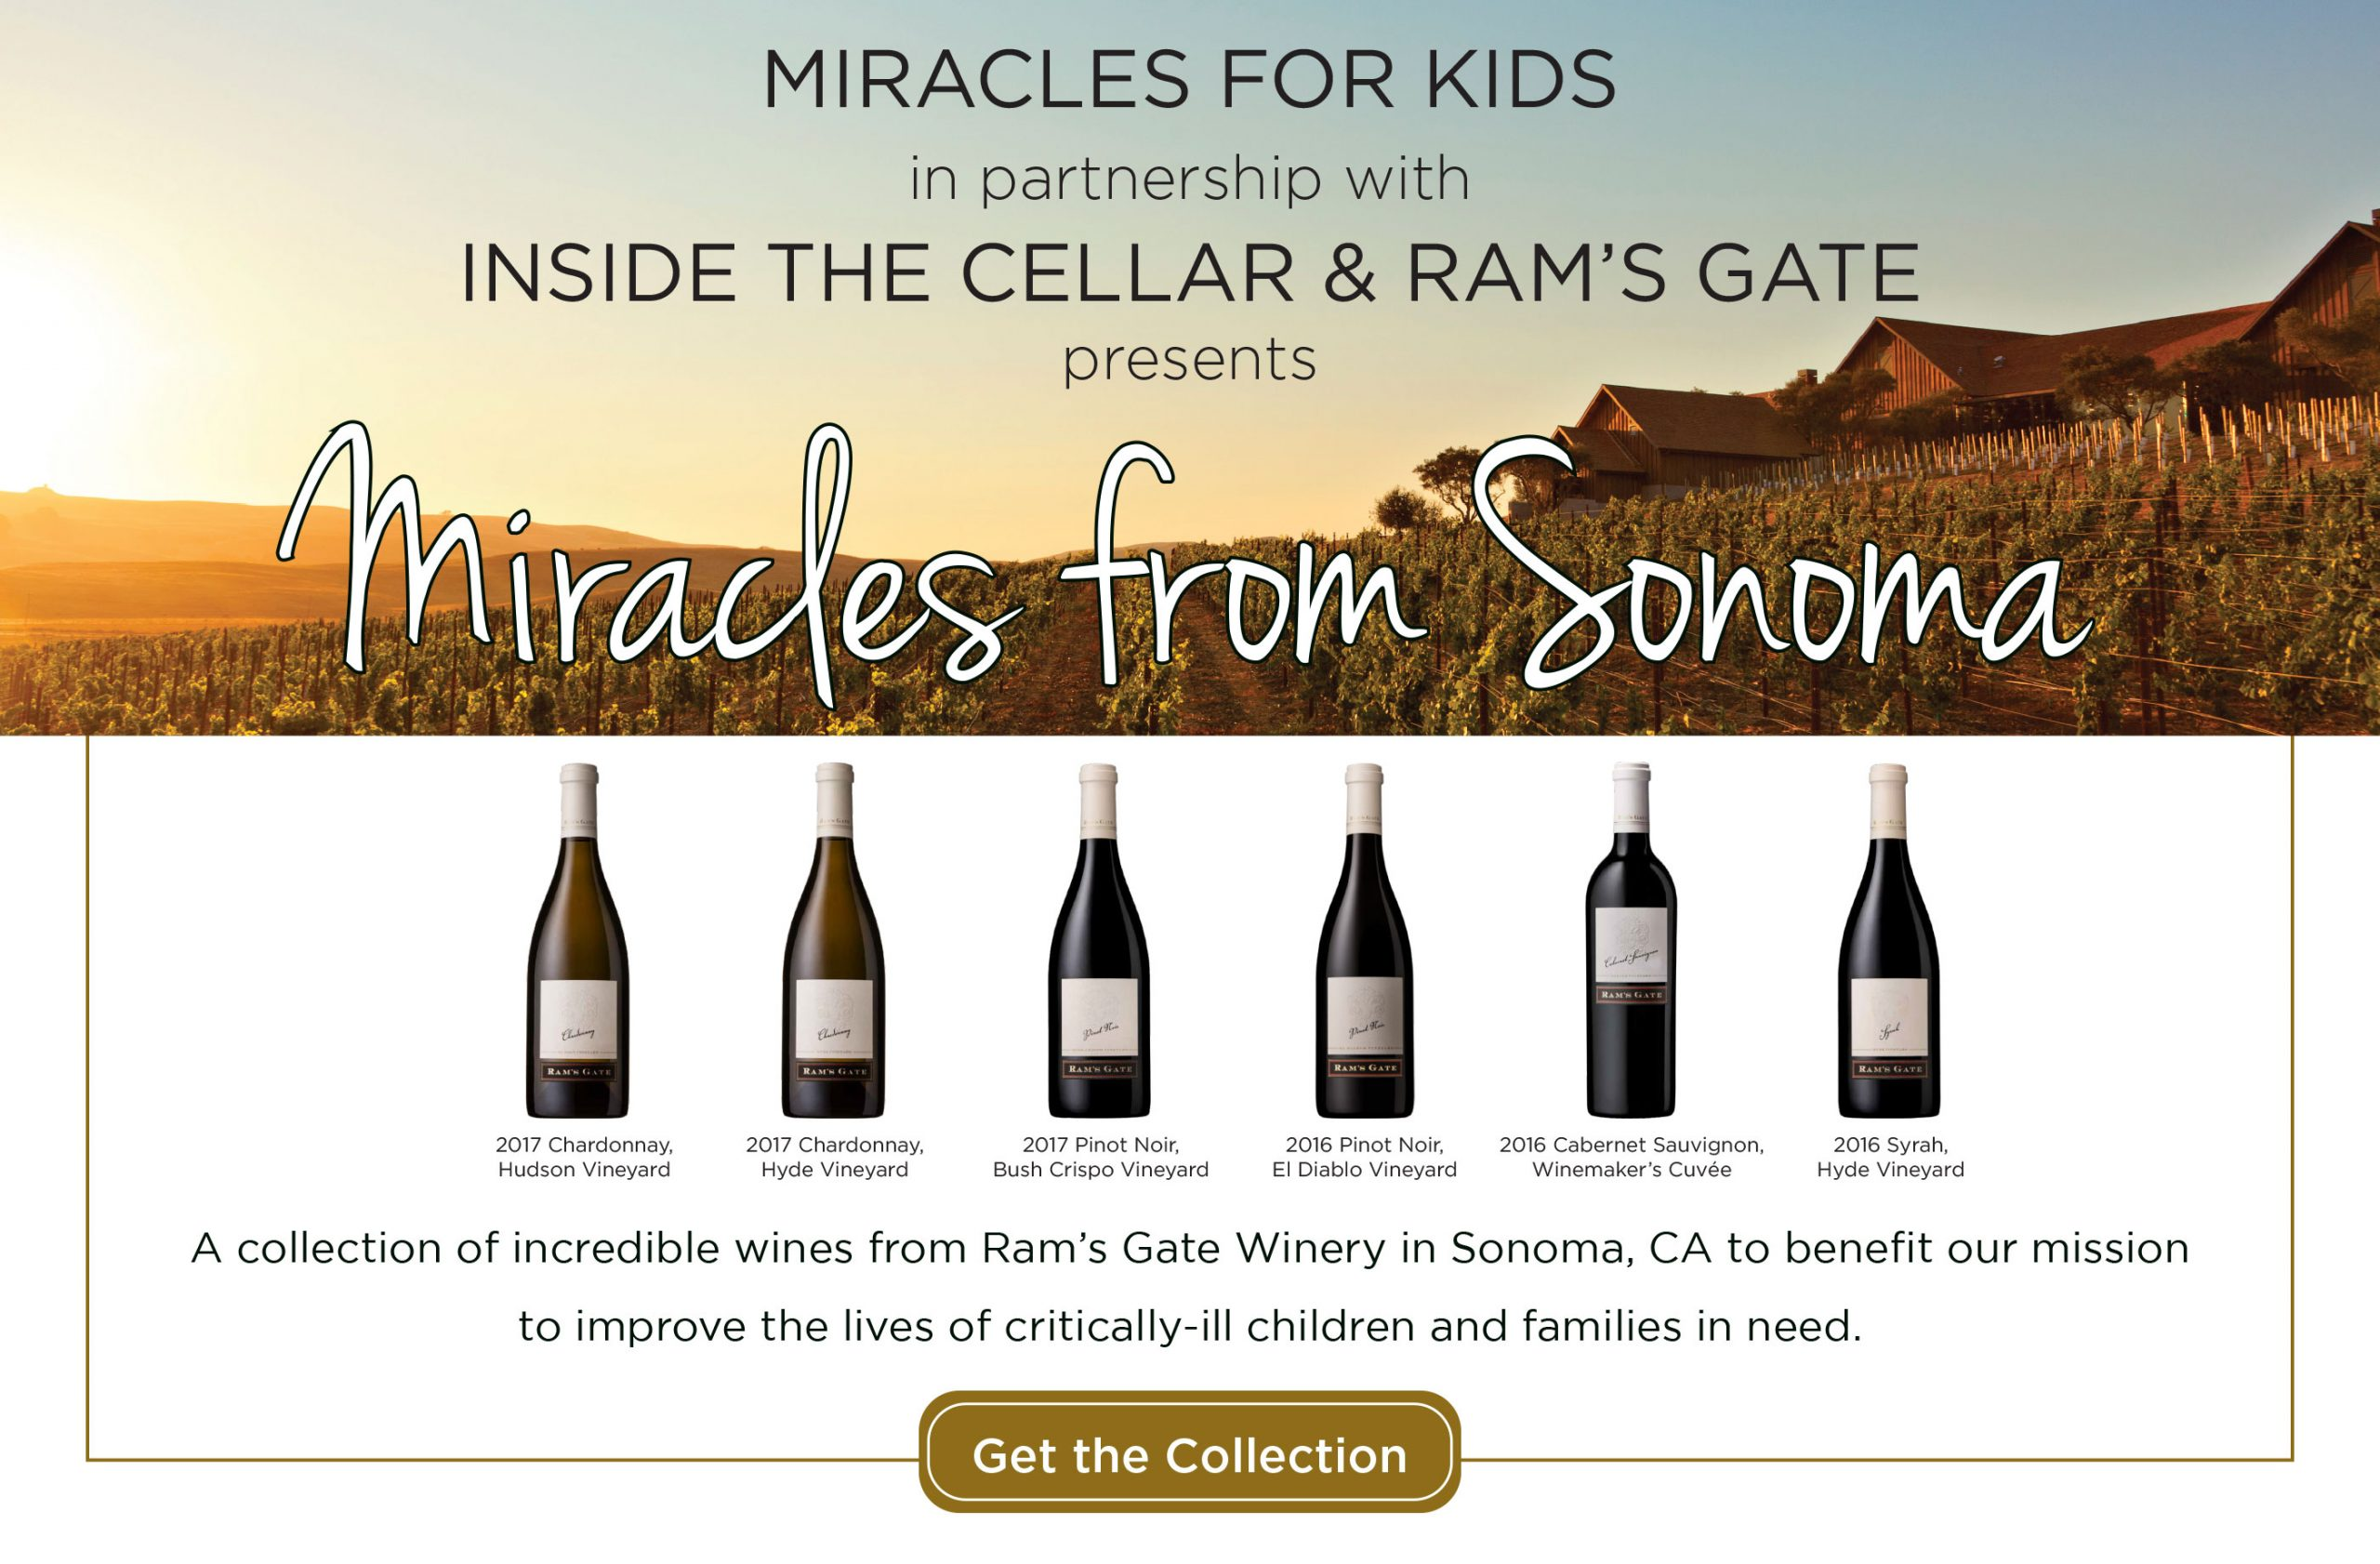 Miracles from Sonoma